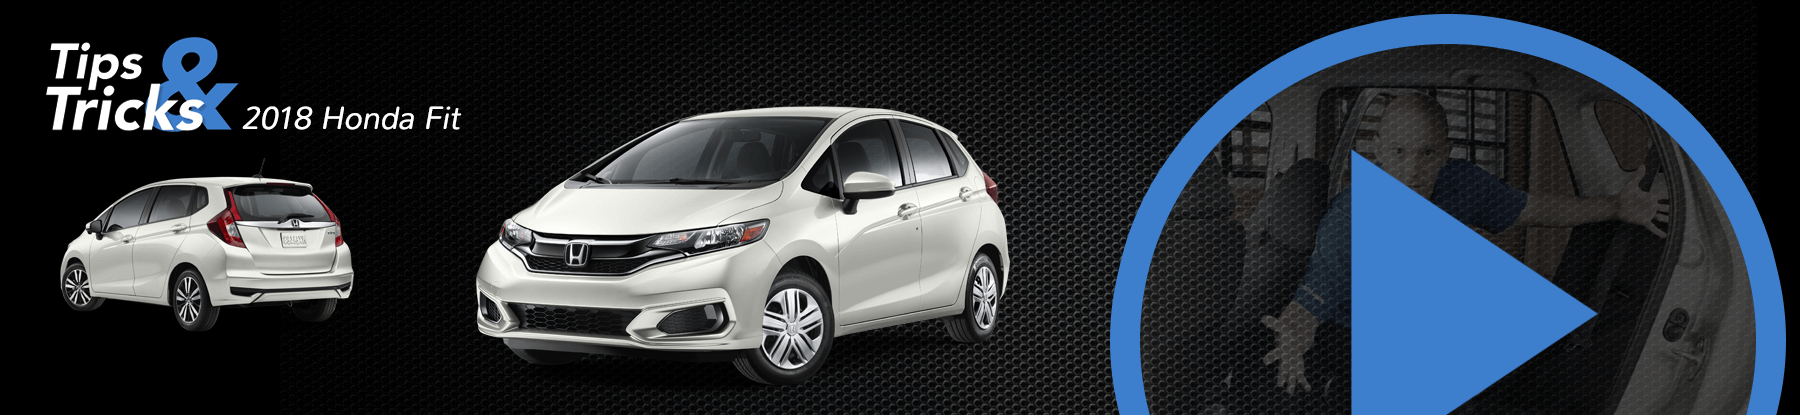 2018 Honda Fit Tips and Tricks